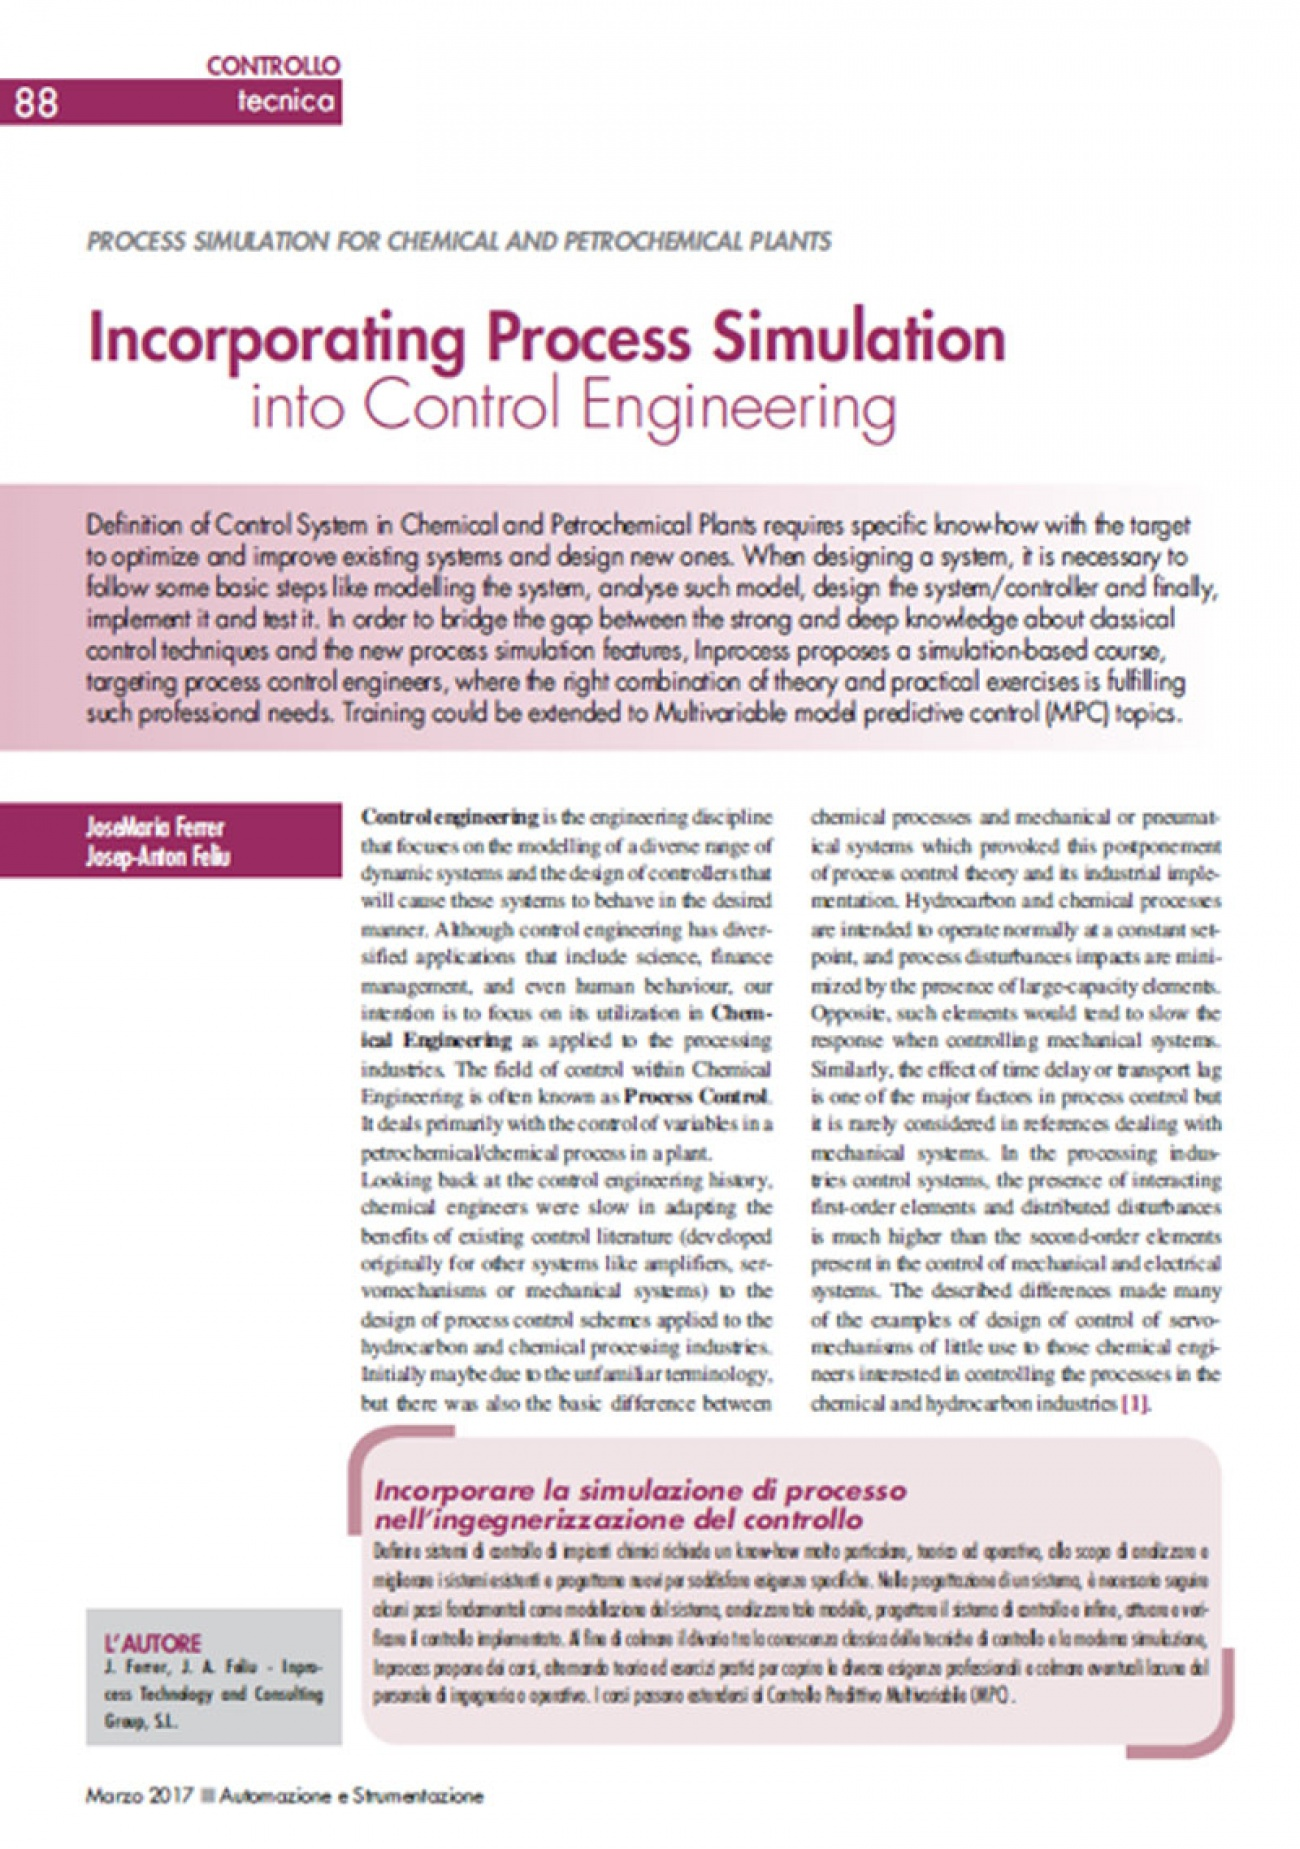 Inprocess Incorporating Process Simulation into Control Engineering